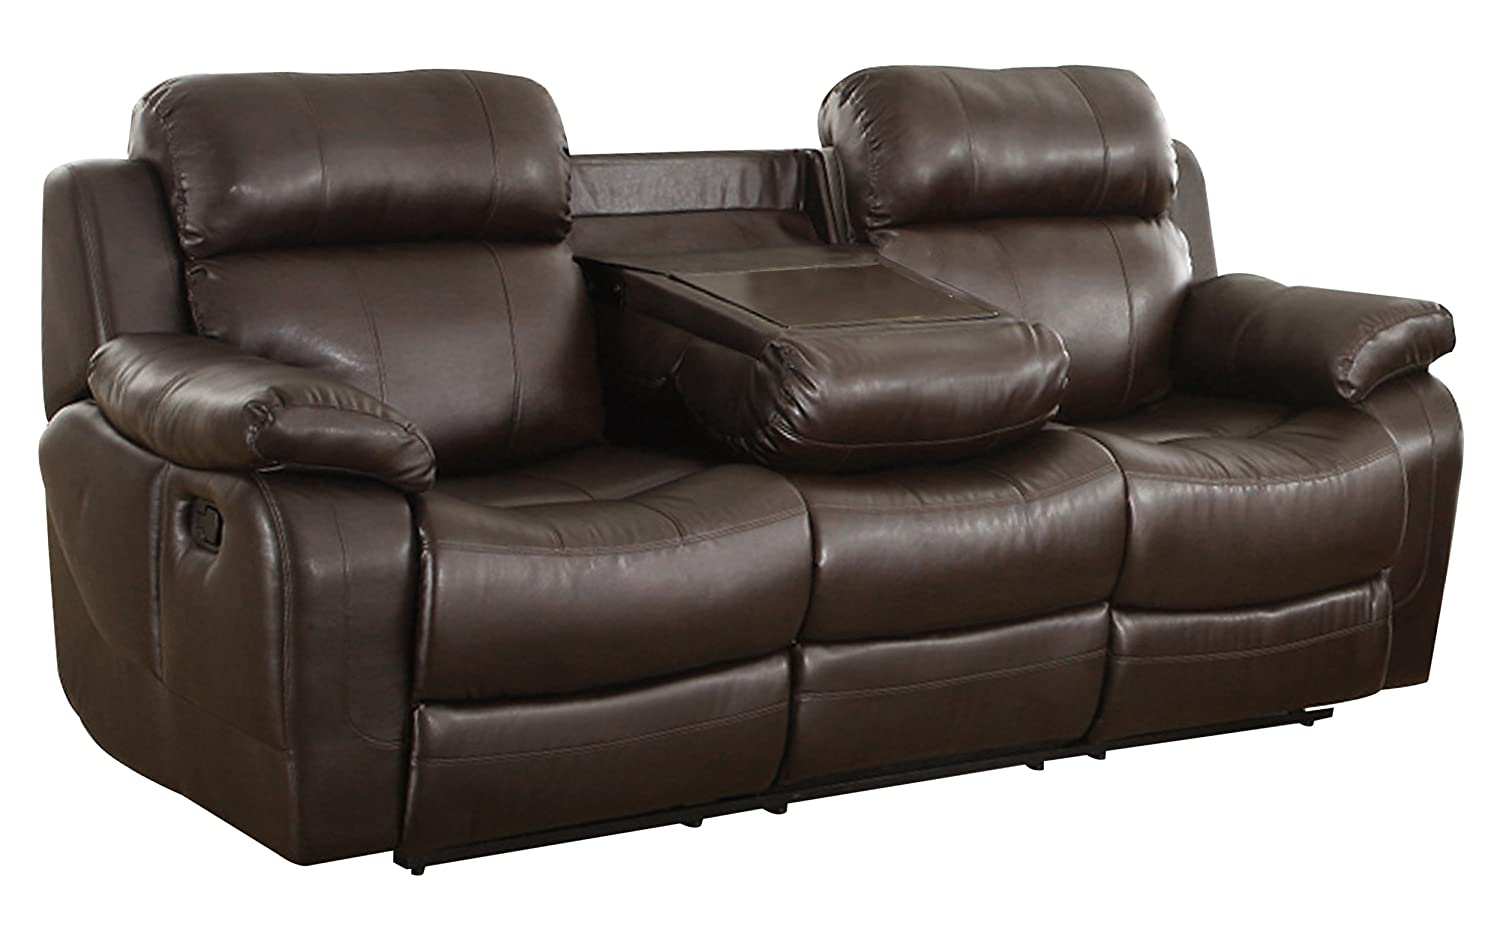 Amazon.com: Homelegance Marille Reclining Sofa W/ Center Console Cup  Holder, Brown Bonded Leather: Kitchen U0026 Dining